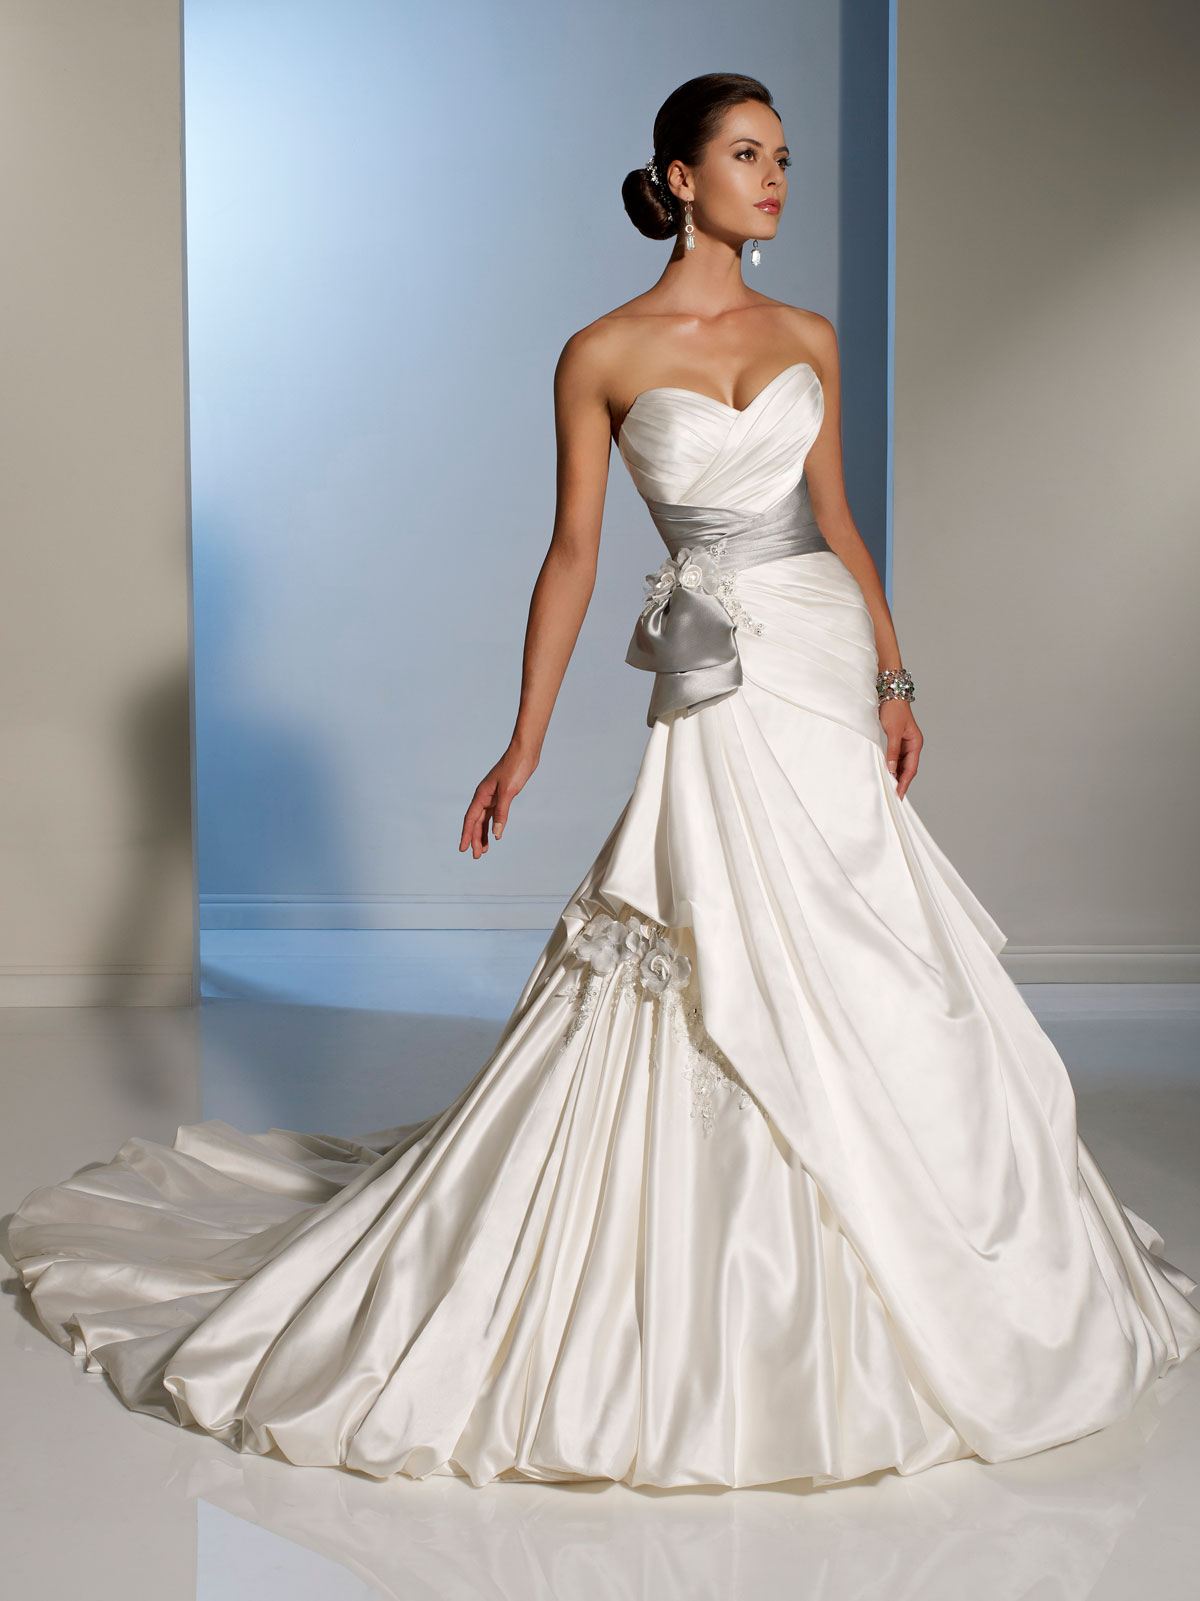 Side Draped Wedding Dress with silver sash